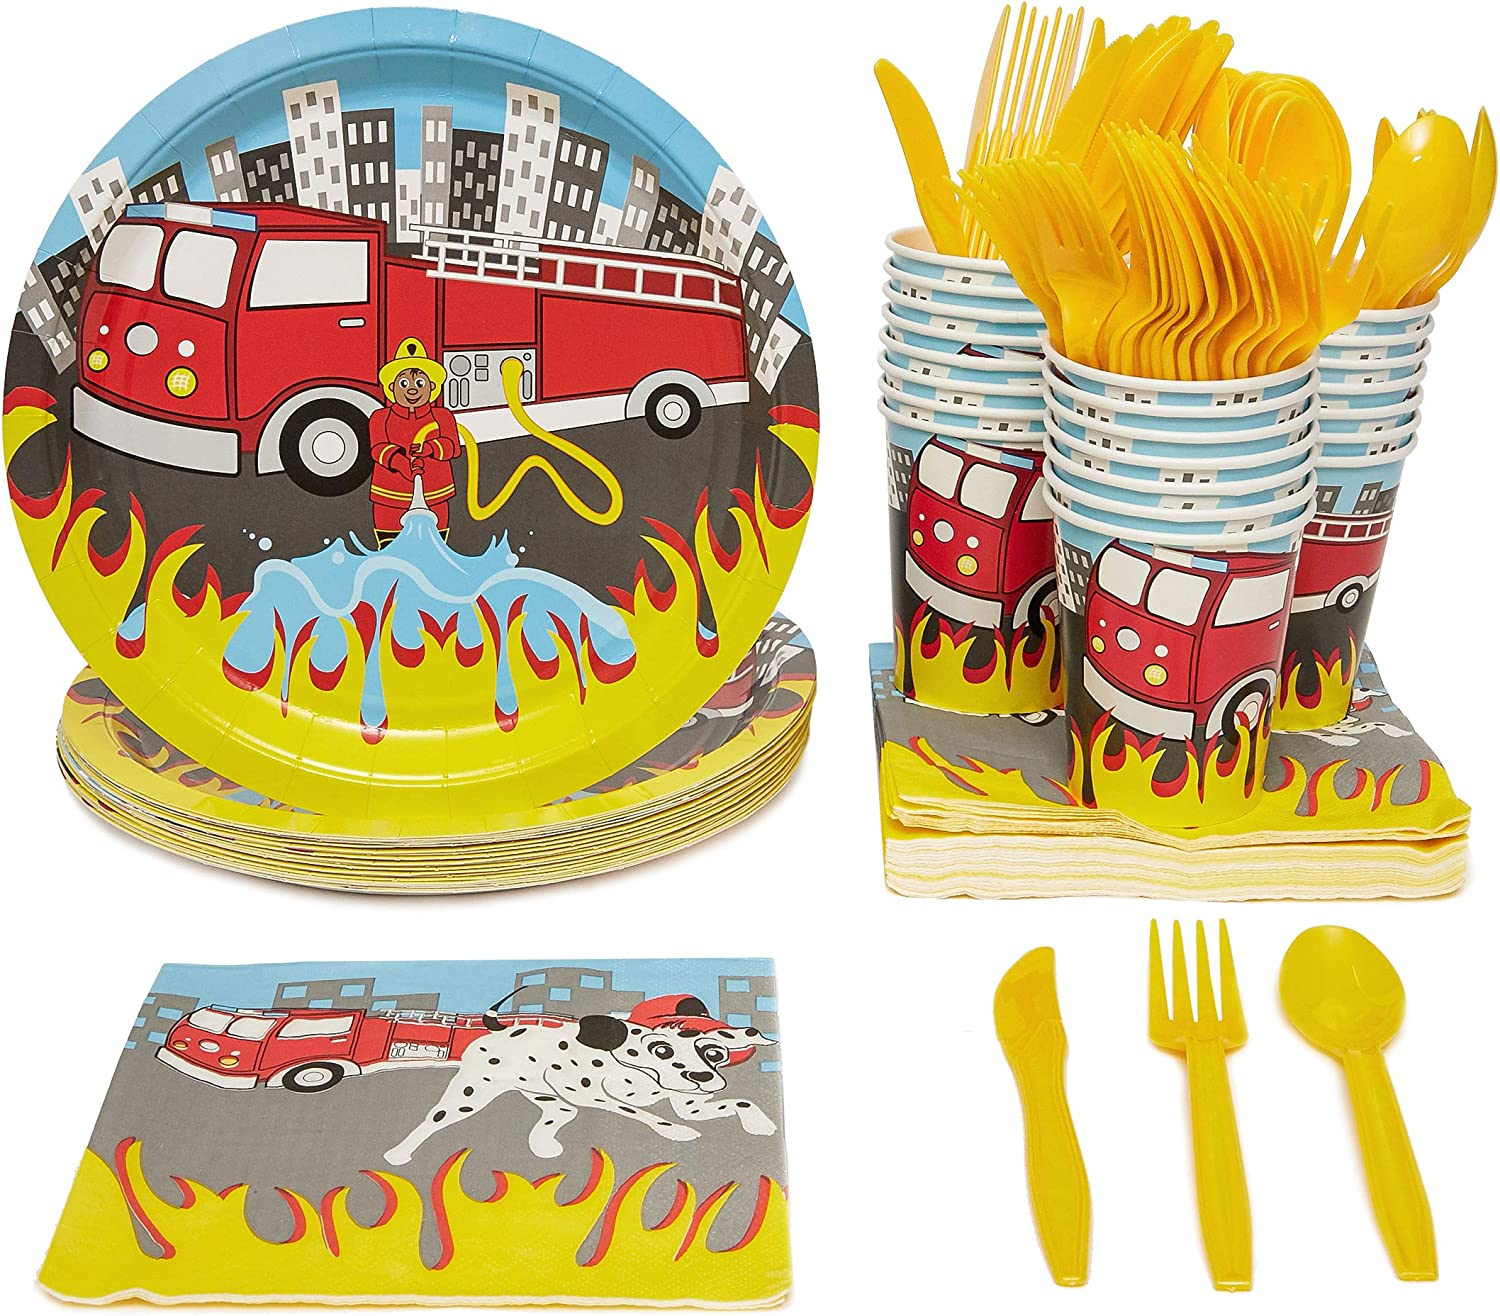 Firetruck Birthday Party Decorations, Paper Plates, Napkins, Cups and Plastic Cutlery (Serves 24, 144 Pieces)